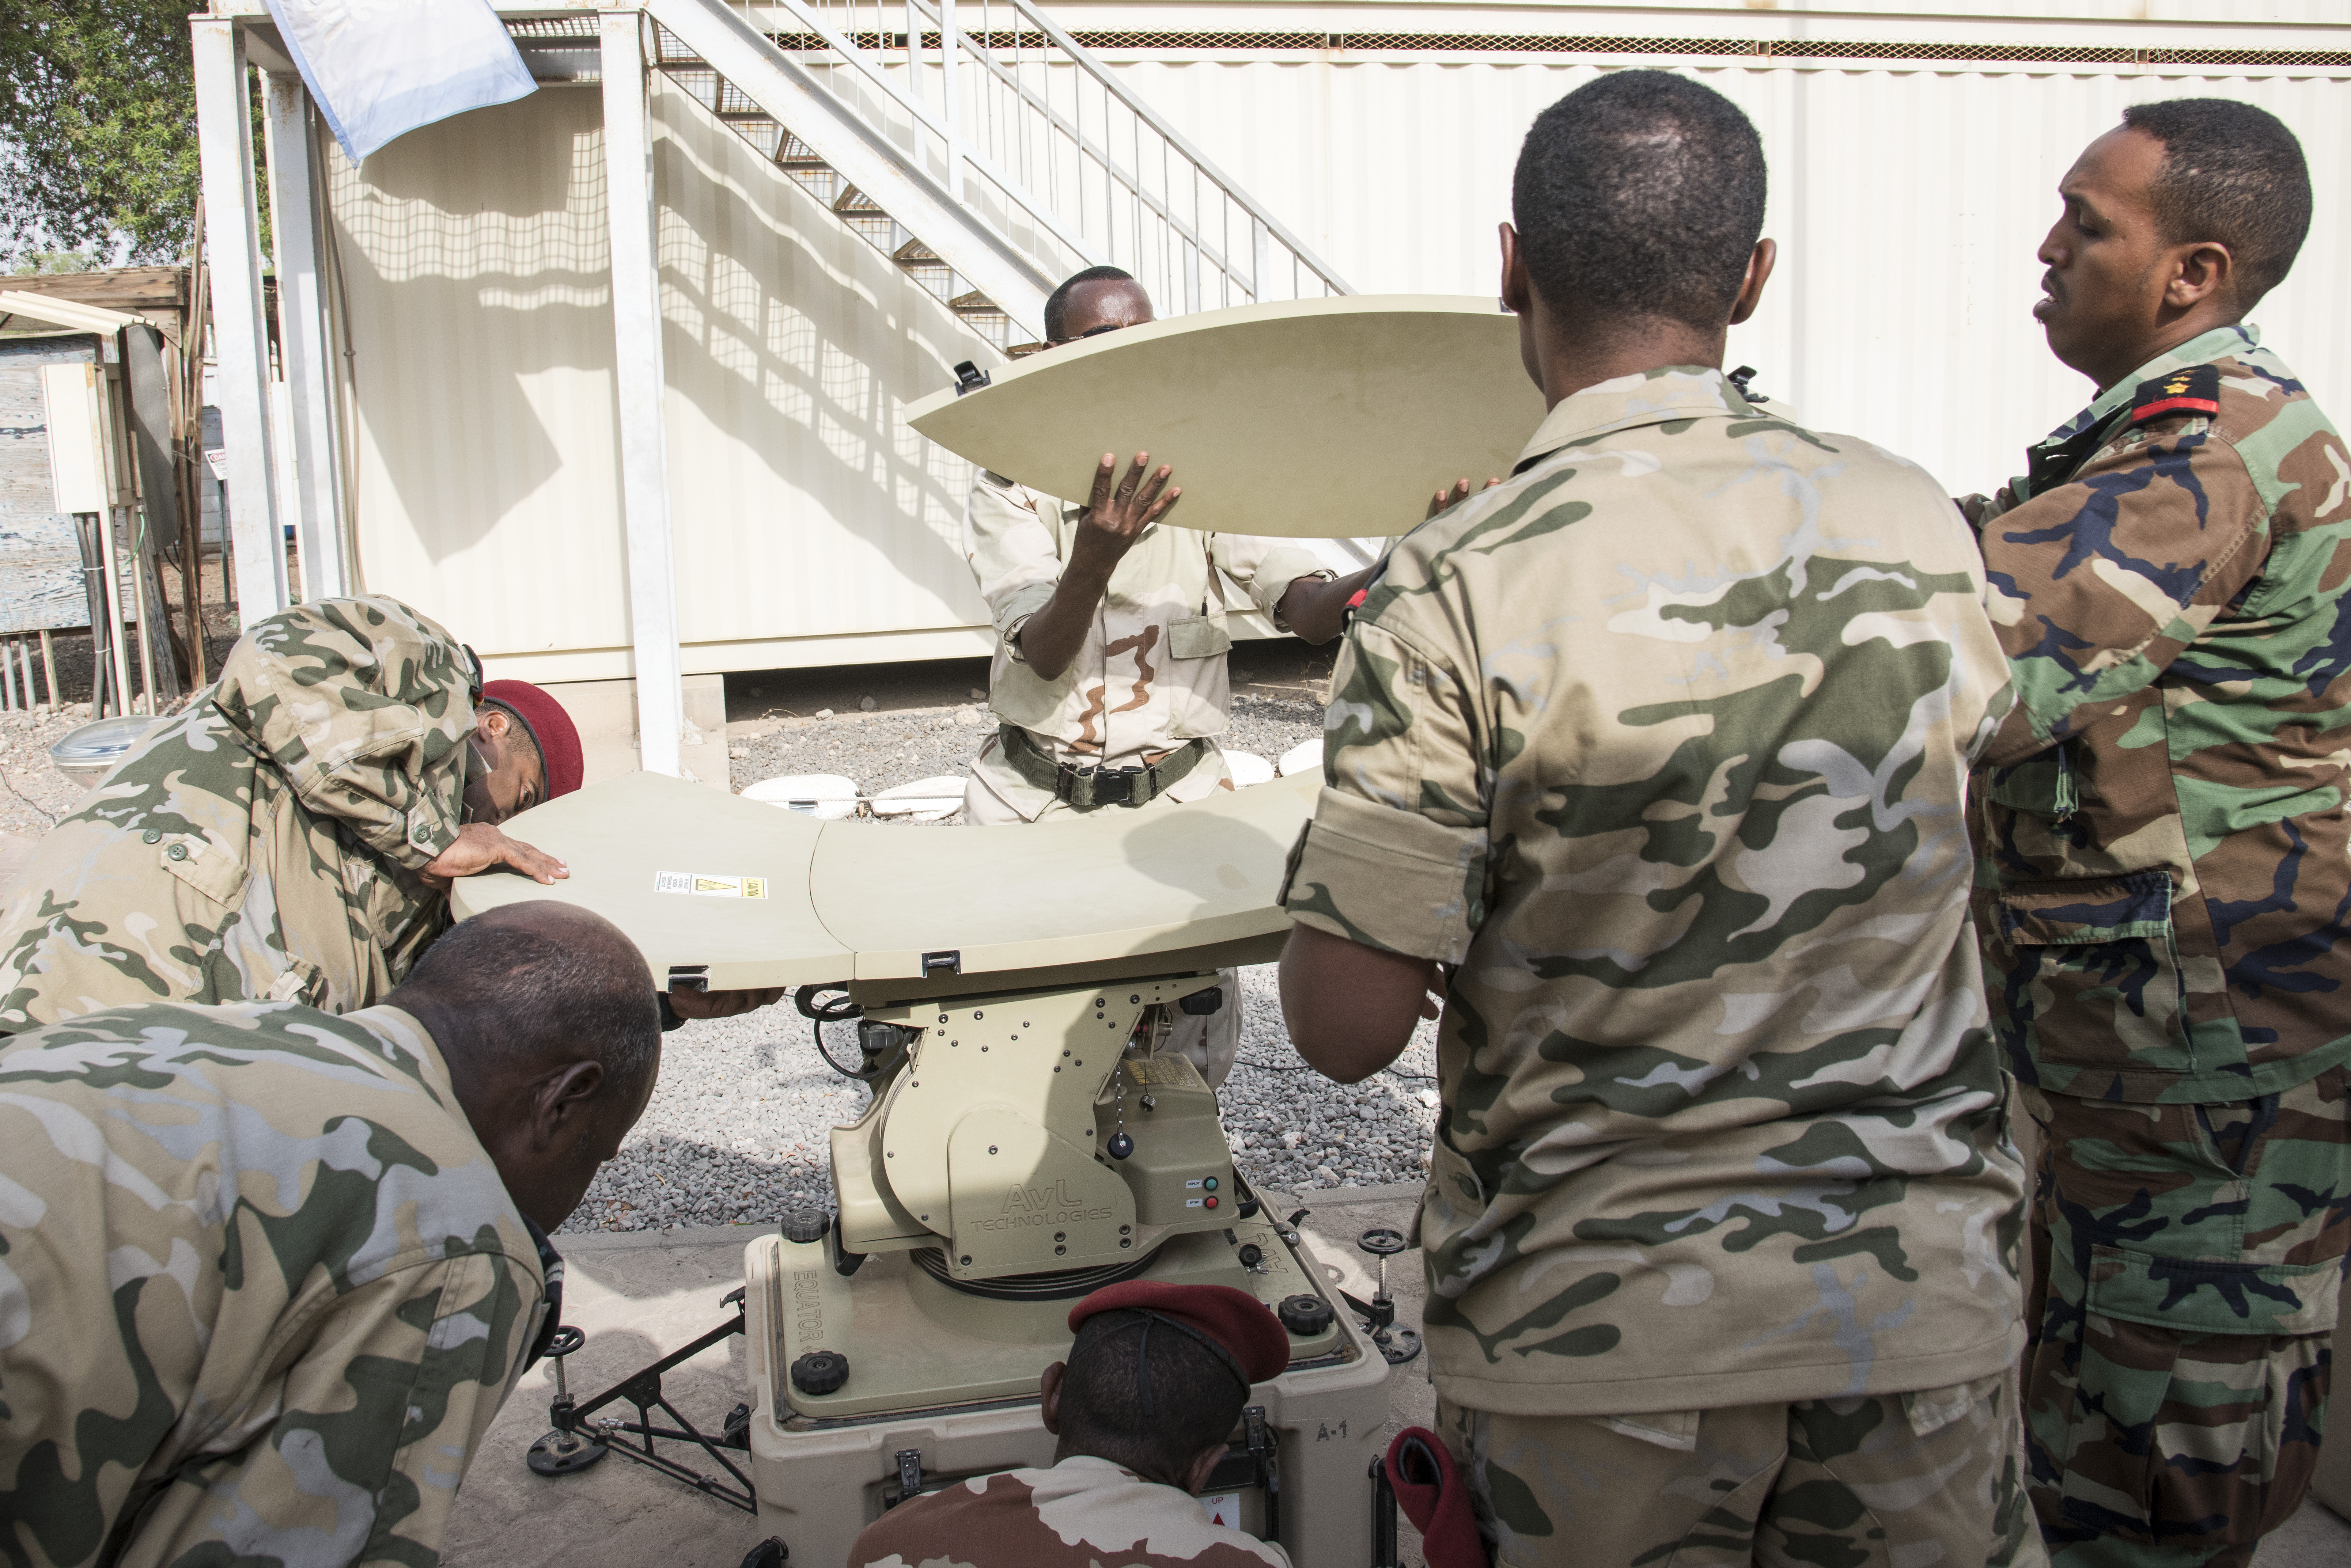 Members of the Djibouti Armed Forces (FAD) assemble the dish of a U.S. Africa Command Data Sharing Network (ADSN) terminal at Camp Lemonnier, Djibouti, Aug 31, 2015.  The ADSN terminal is an enclosed network, meaning it never connects to the internet, and is used by African Mission in Somali forces for field communications. Its setup and use was part of a multi-week ADSN course designed to broaden communication interoperability between host nation security forces, and was hosted by communications and intelligence personnel assigned to Combined Joint Task Force-Horn of Africa. (U.S. Air Force photo by Staff Sgt. Nathan Maysonet/released)